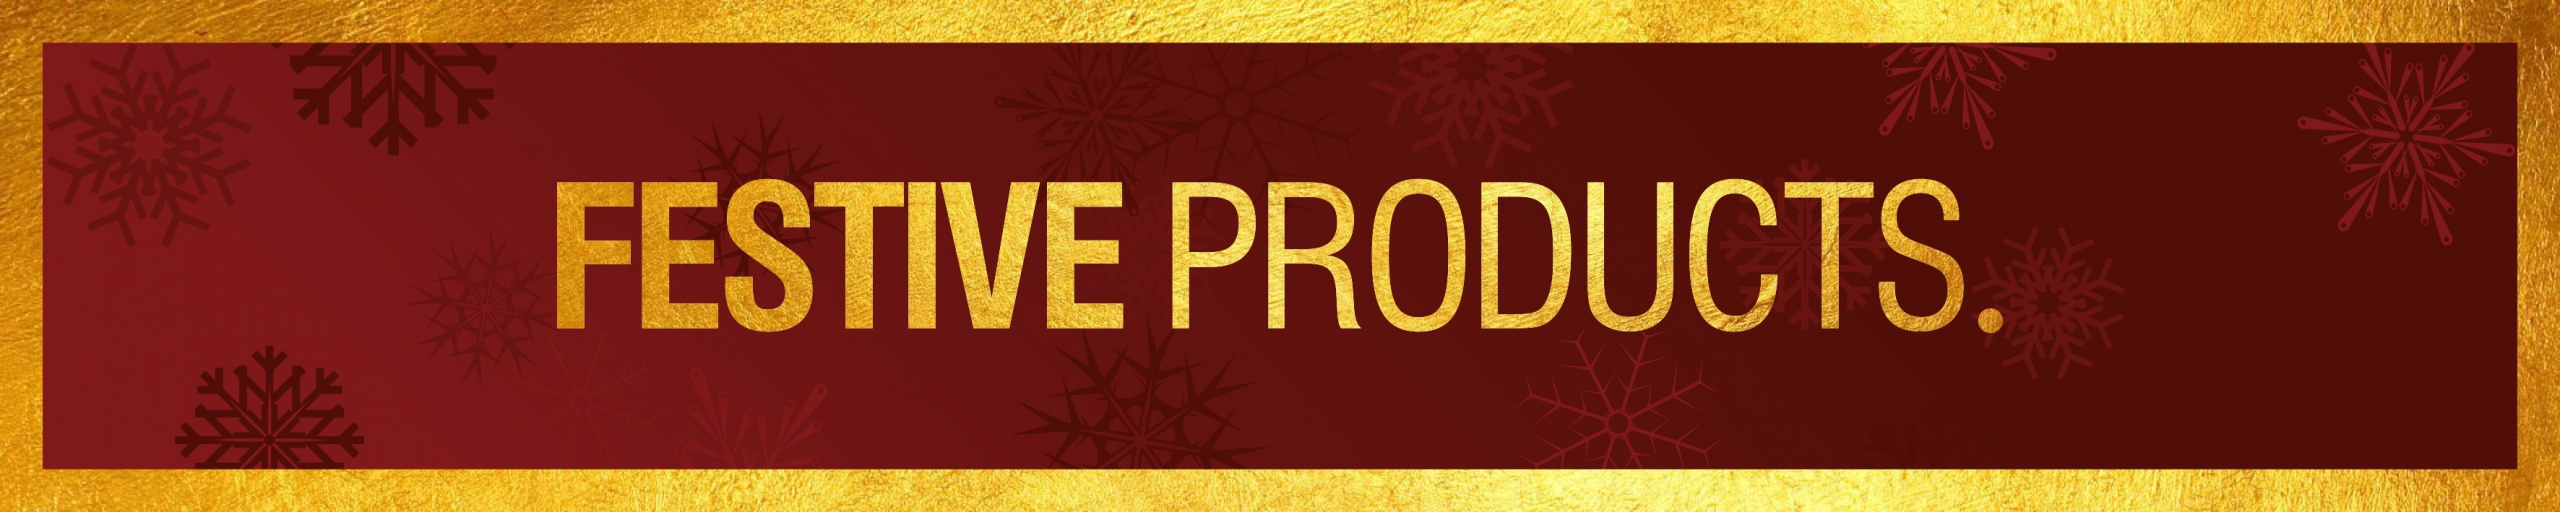 Festive Products Banner 21